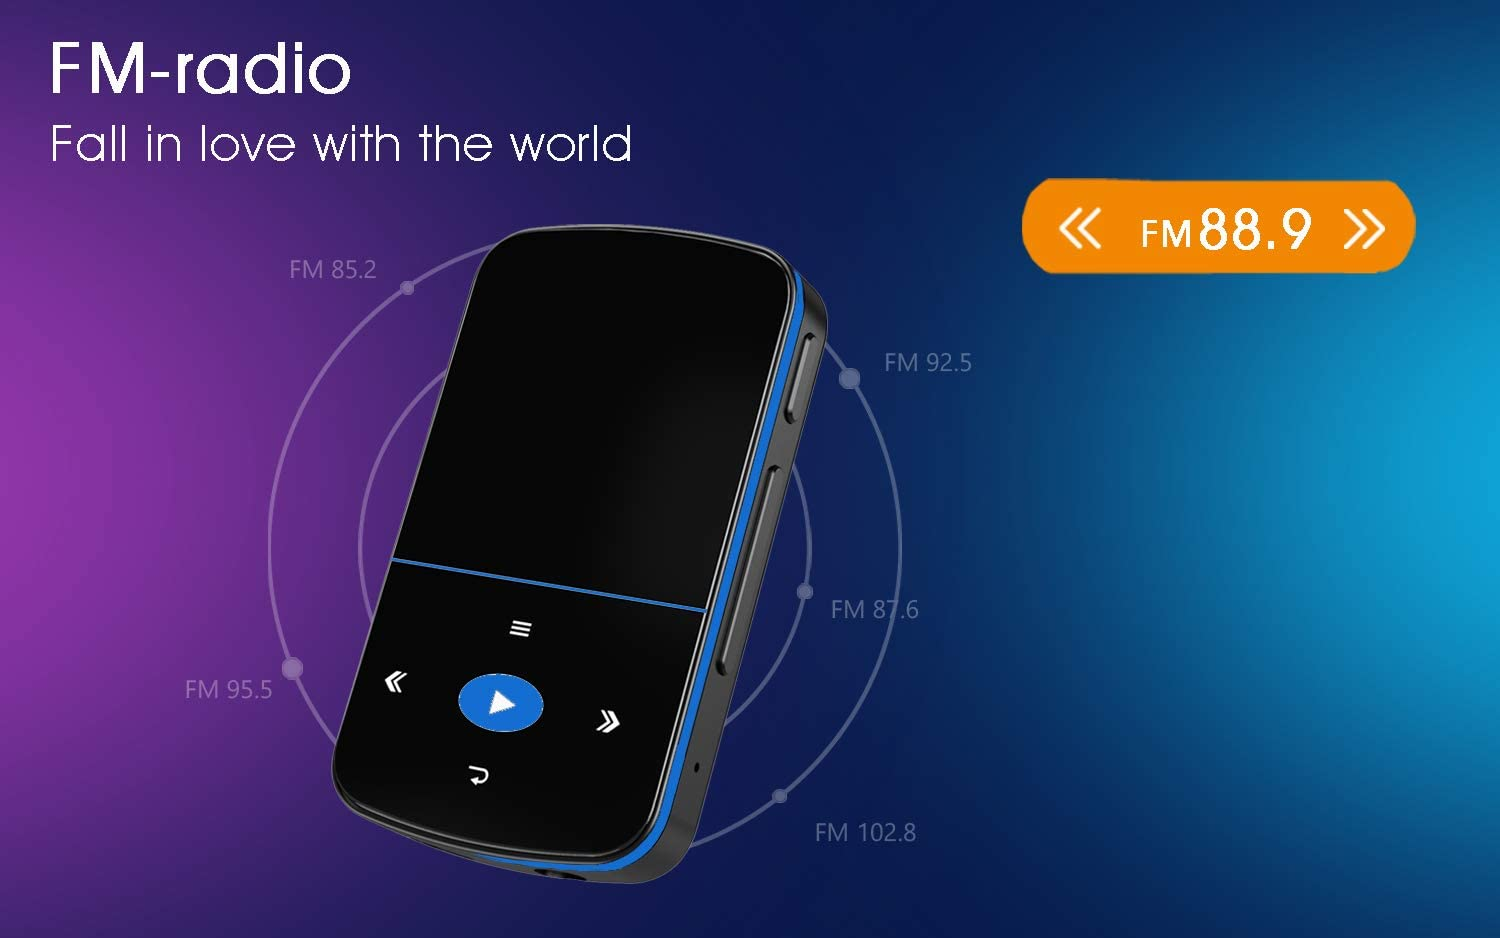 Vioce Recorder Mibao MP3 Player with Bluetooth Portable Music Player with Clip FM Radio 32GB Mini MP3 Player Sport Pedometer Ideal for Sports Expandable up to 64GB Micro SD Slot